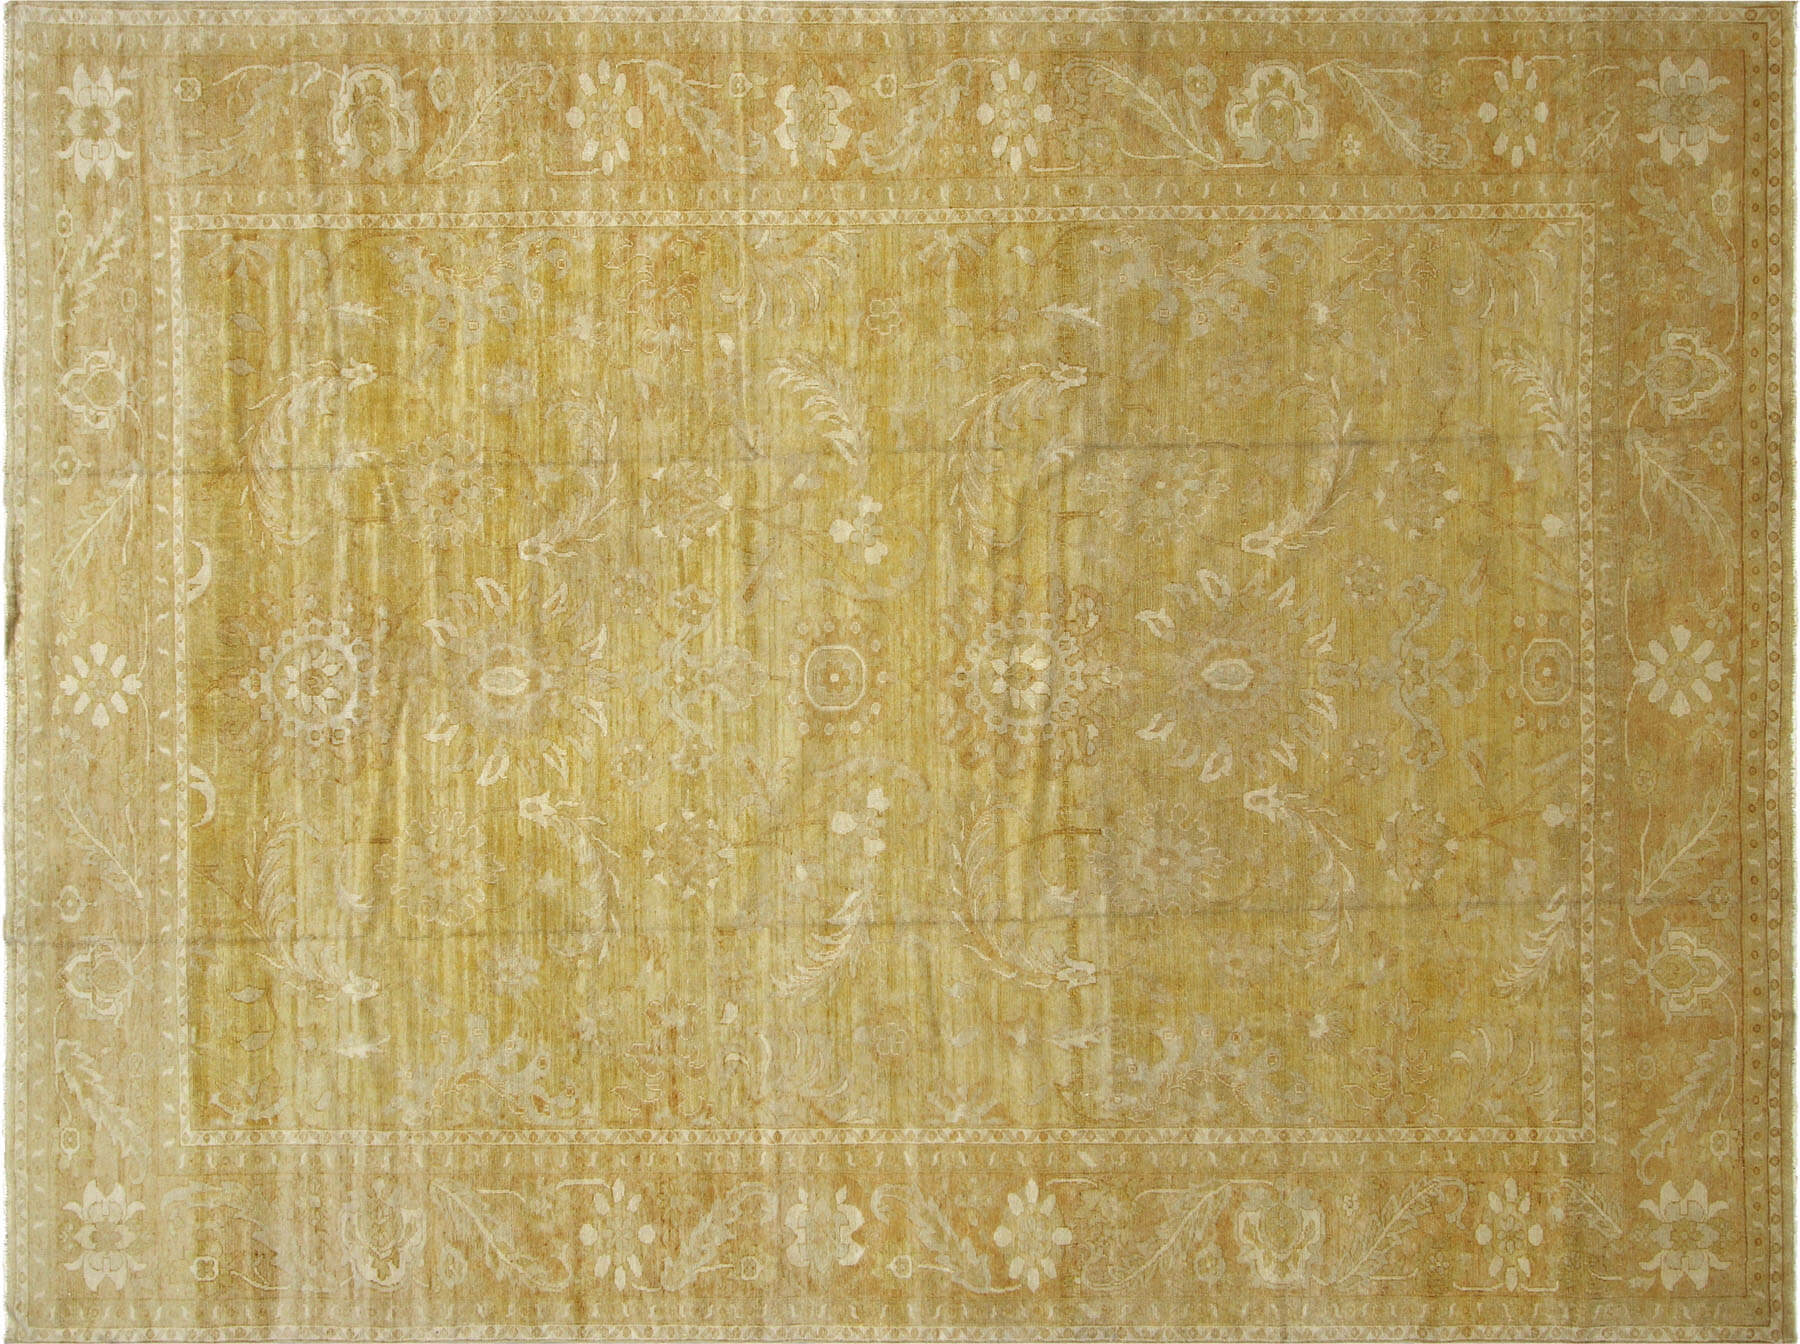 "Recently Woven Egyptian Sultanabad Carpet - 9'0"" x 12'0"""